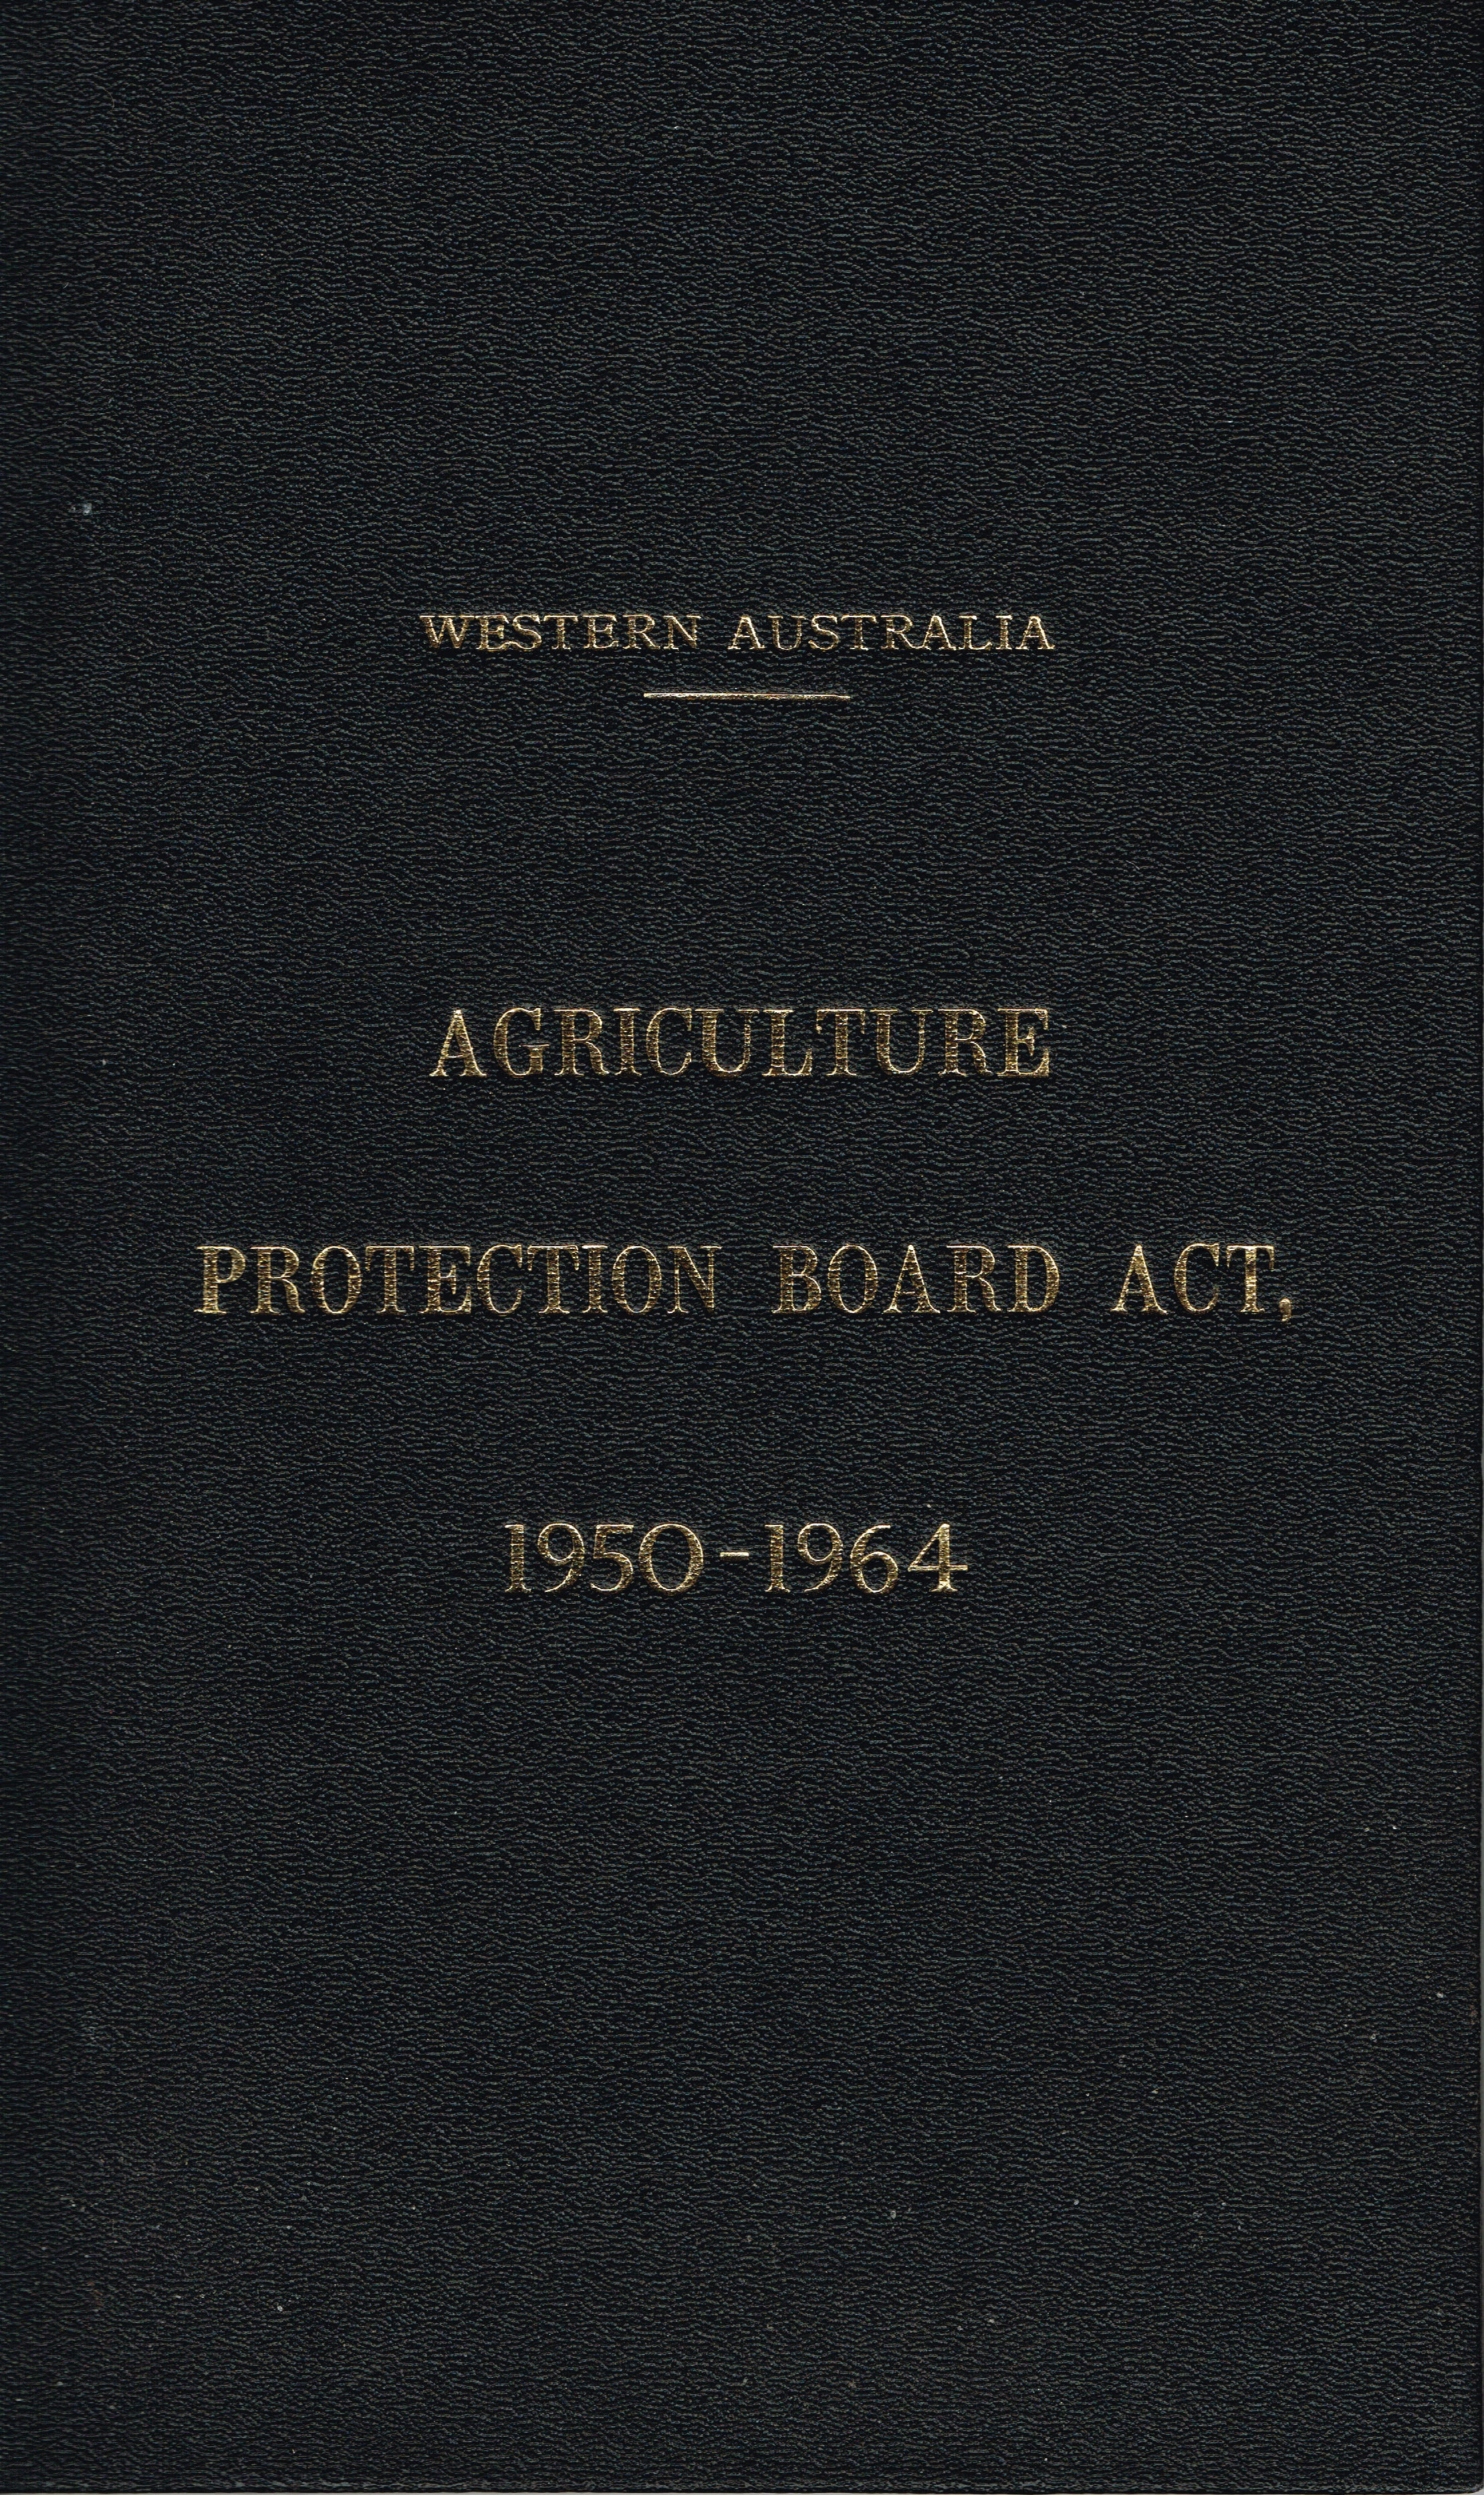 Western Australia Agriculture Protection Board Act 1950-1964  By Authority: Alex B. Davies, Government Printer